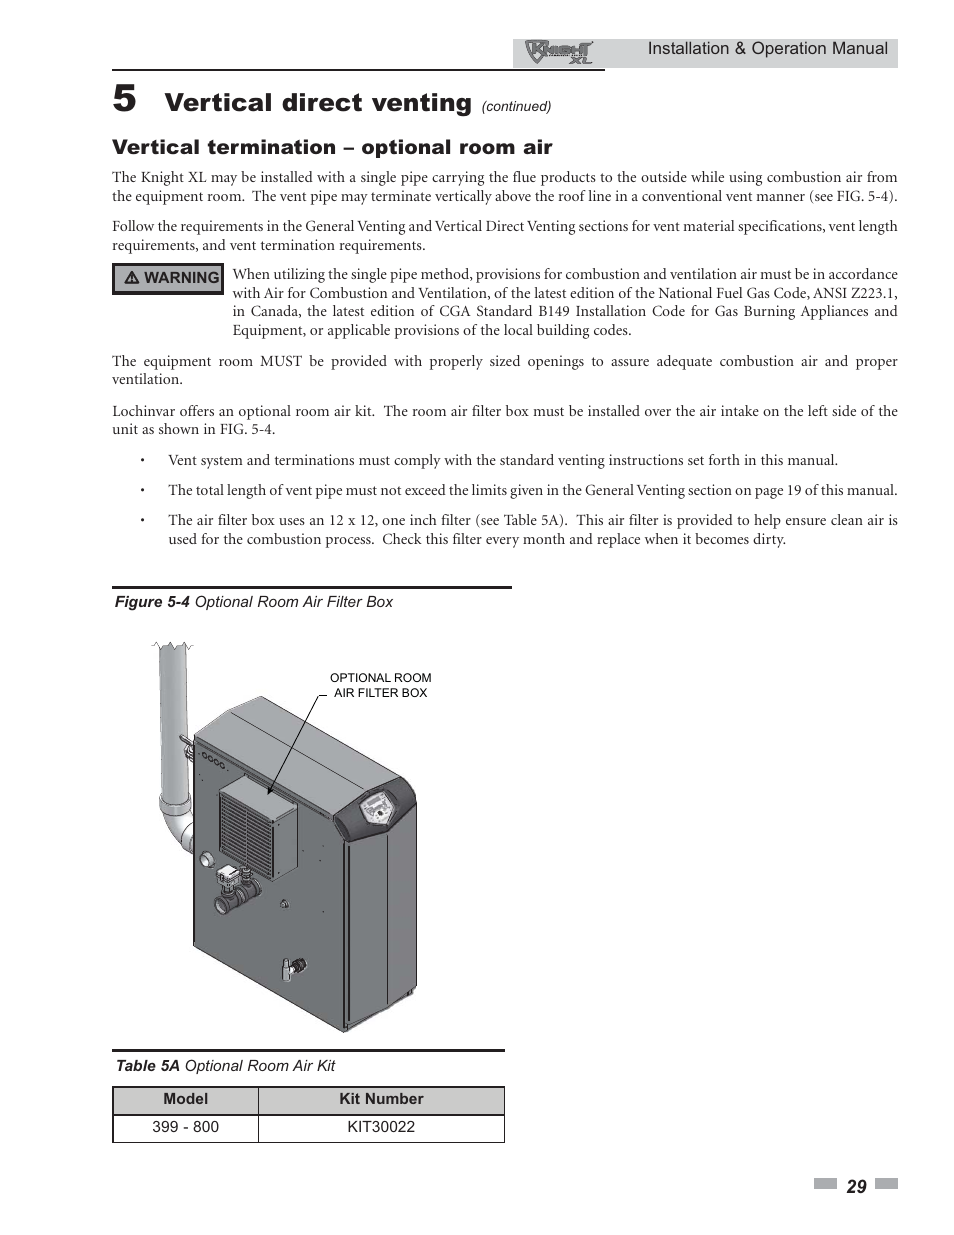 Vertical Direct Venting Vertical Termination Optional